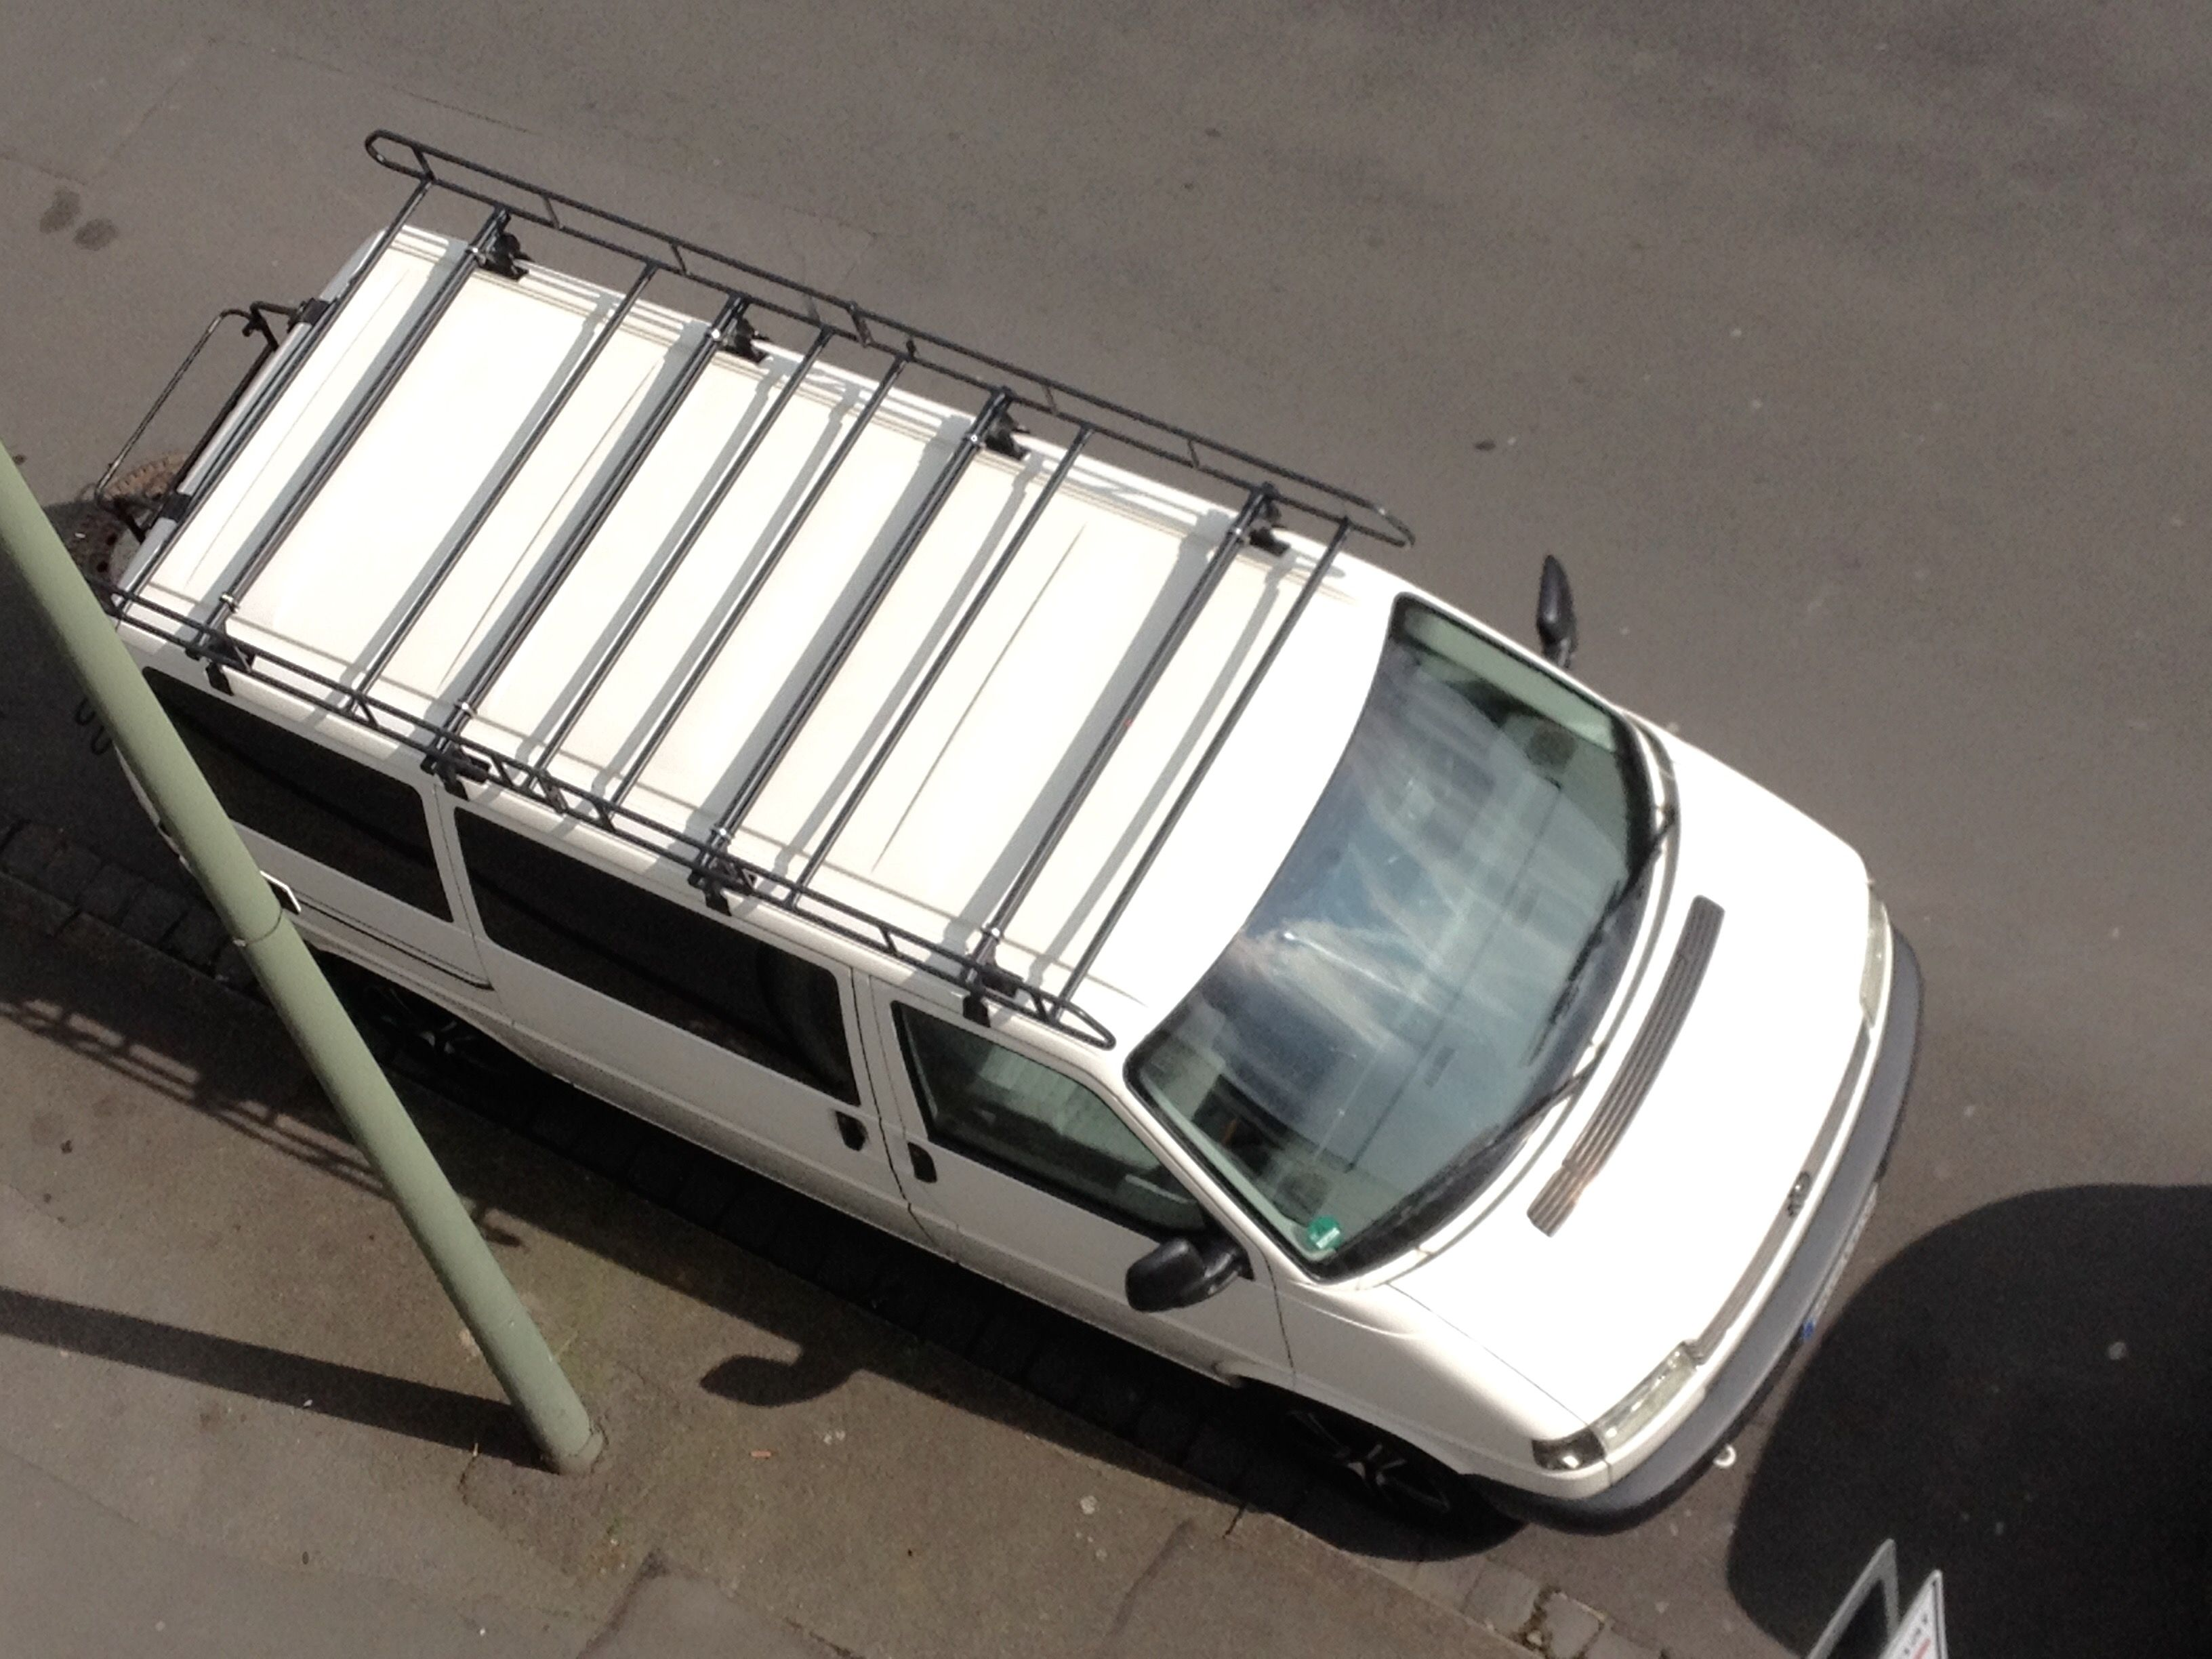 vito roof rack on vw t4 bus. Black Bedroom Furniture Sets. Home Design Ideas